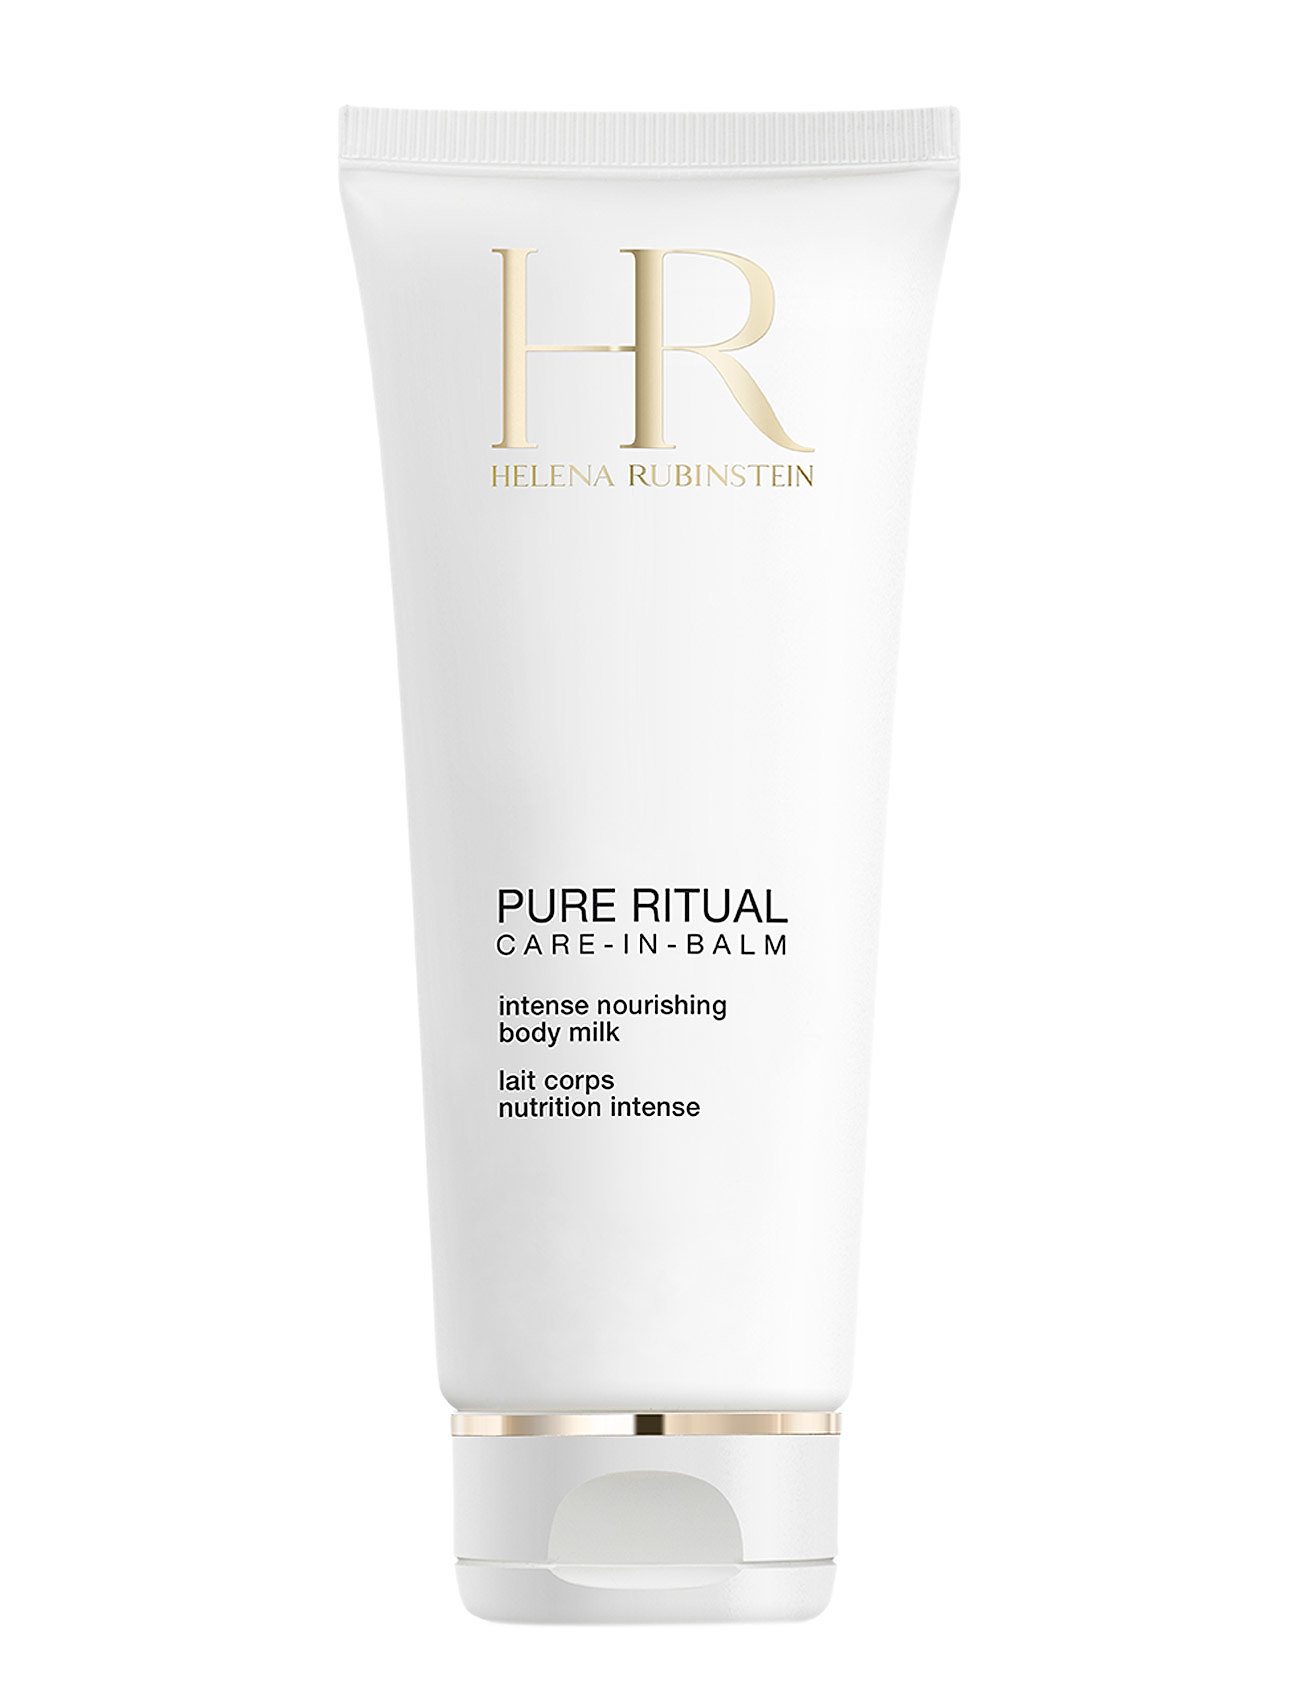 helena rubinstein Pure ritual body cream 200 ml på boozt.com dk